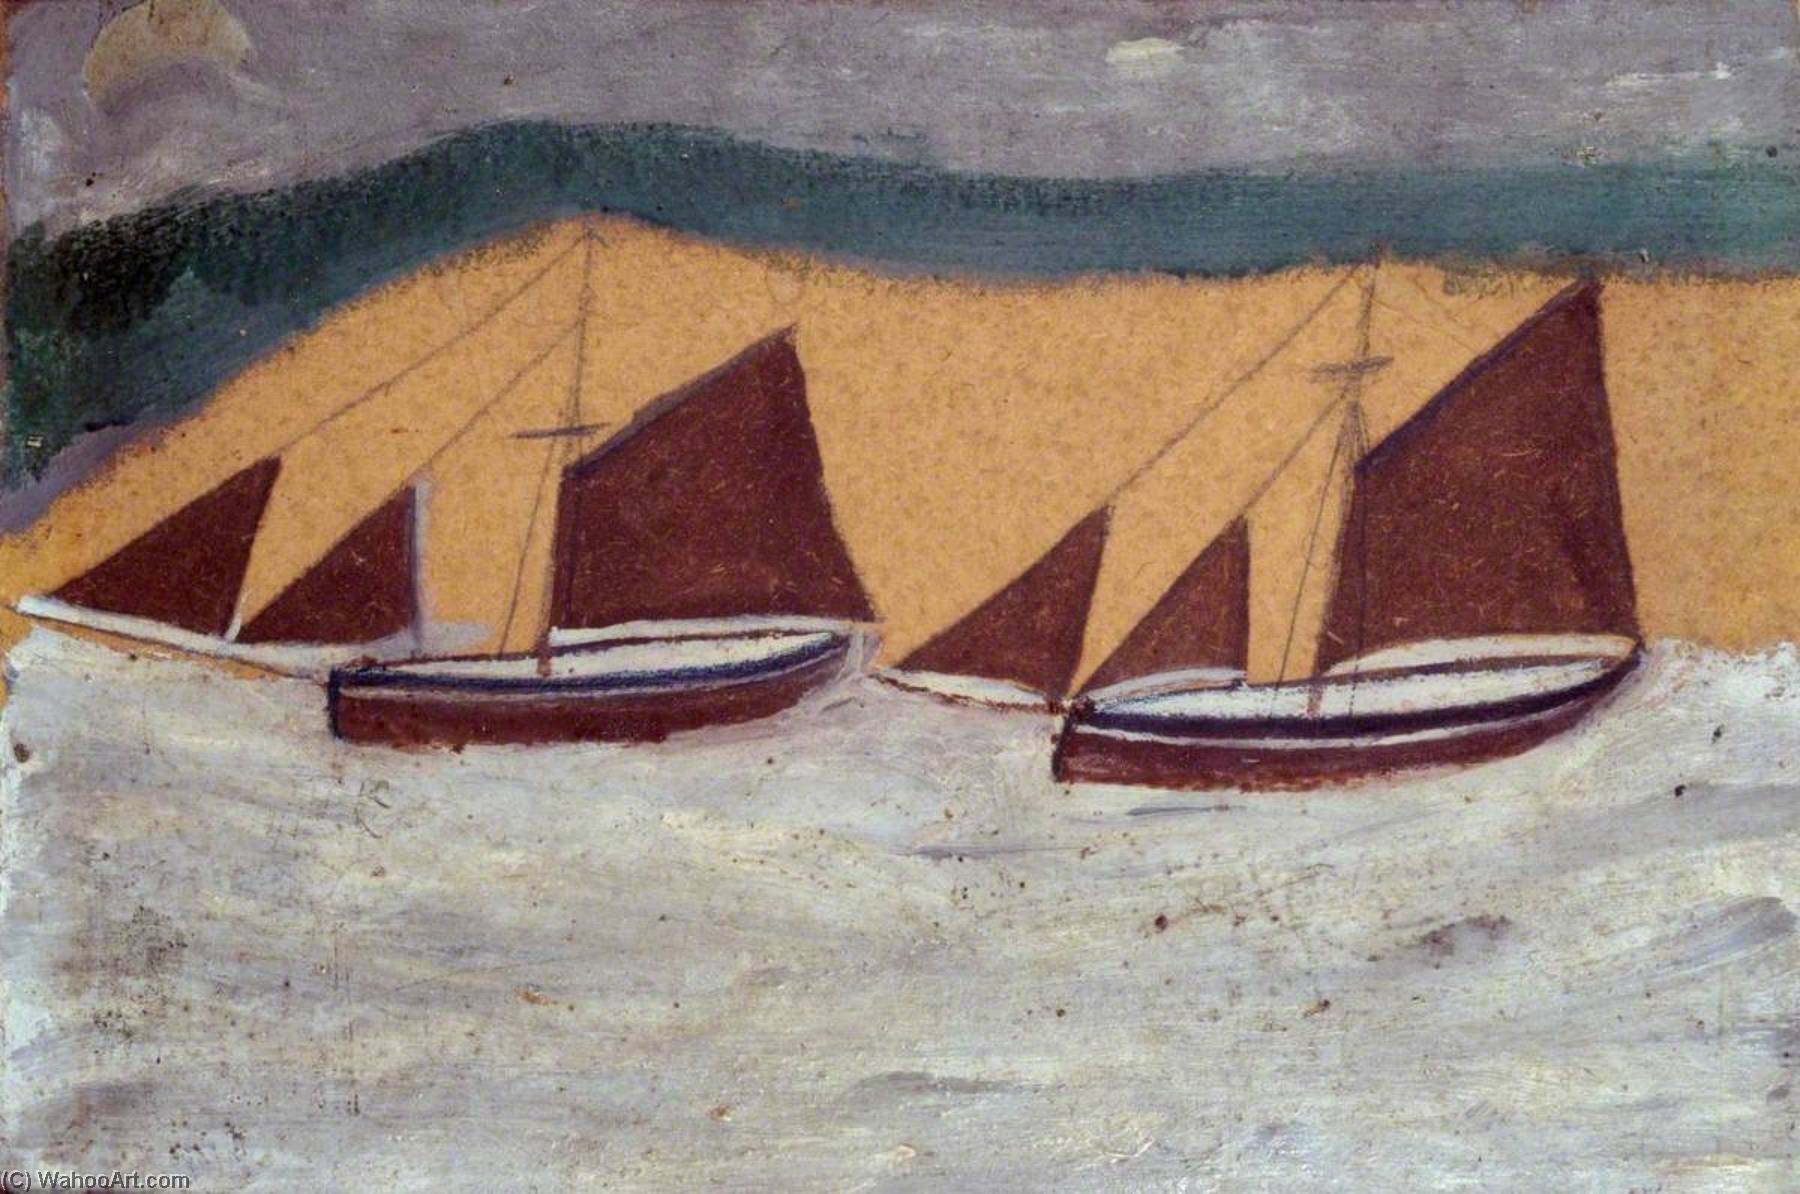 due barche, penna di Alfred Wallis (1855-1942, United Kingdom)